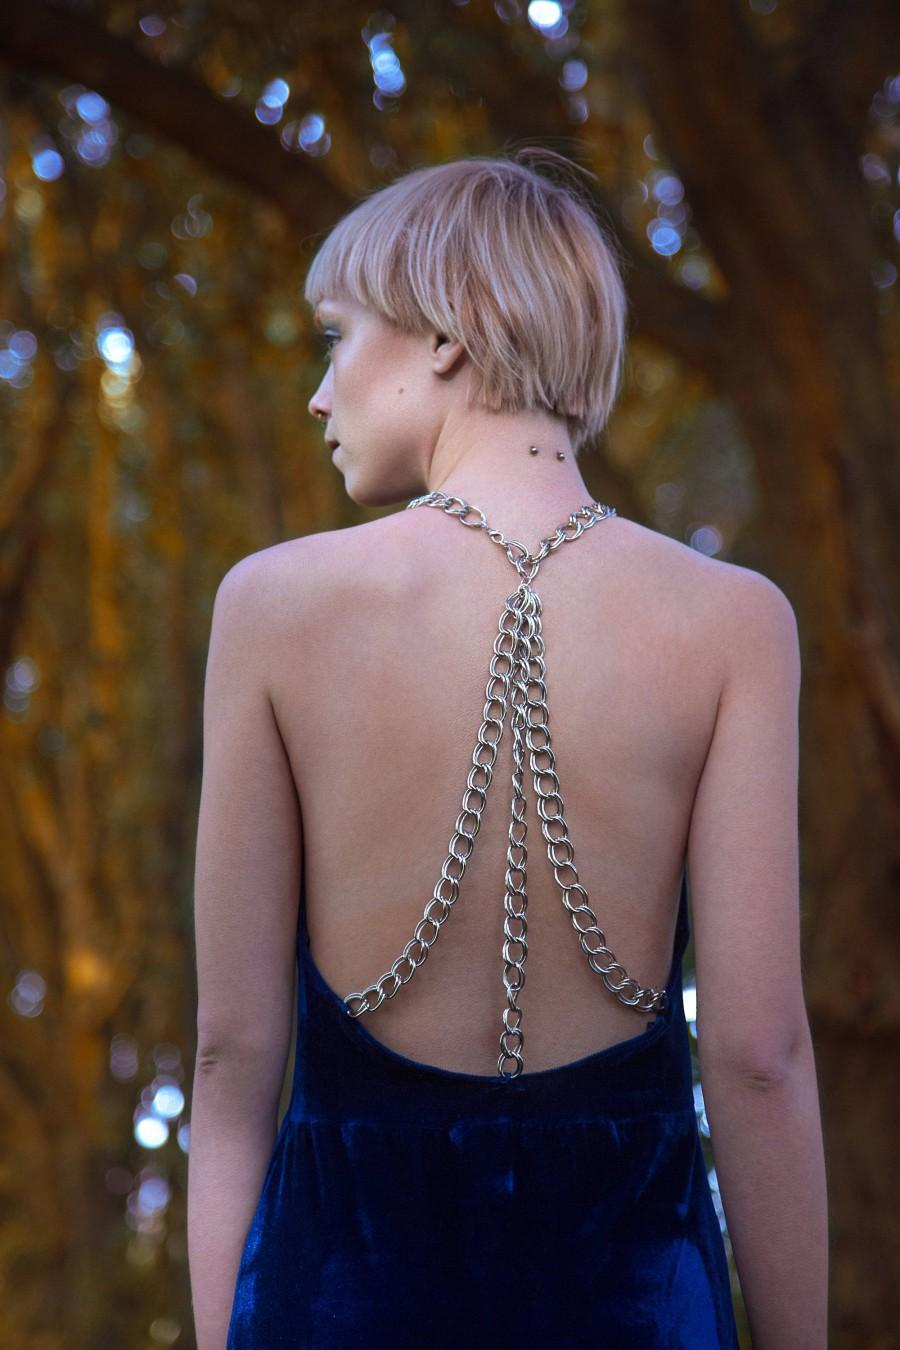 Hochzeit - Breaker of Chains Dress, Bridal, Bridesmaid, Alternative, Edgy, Game of Thrones, Blue, Velvet, Chains, Low Back, Evening Wear, Formal Wear